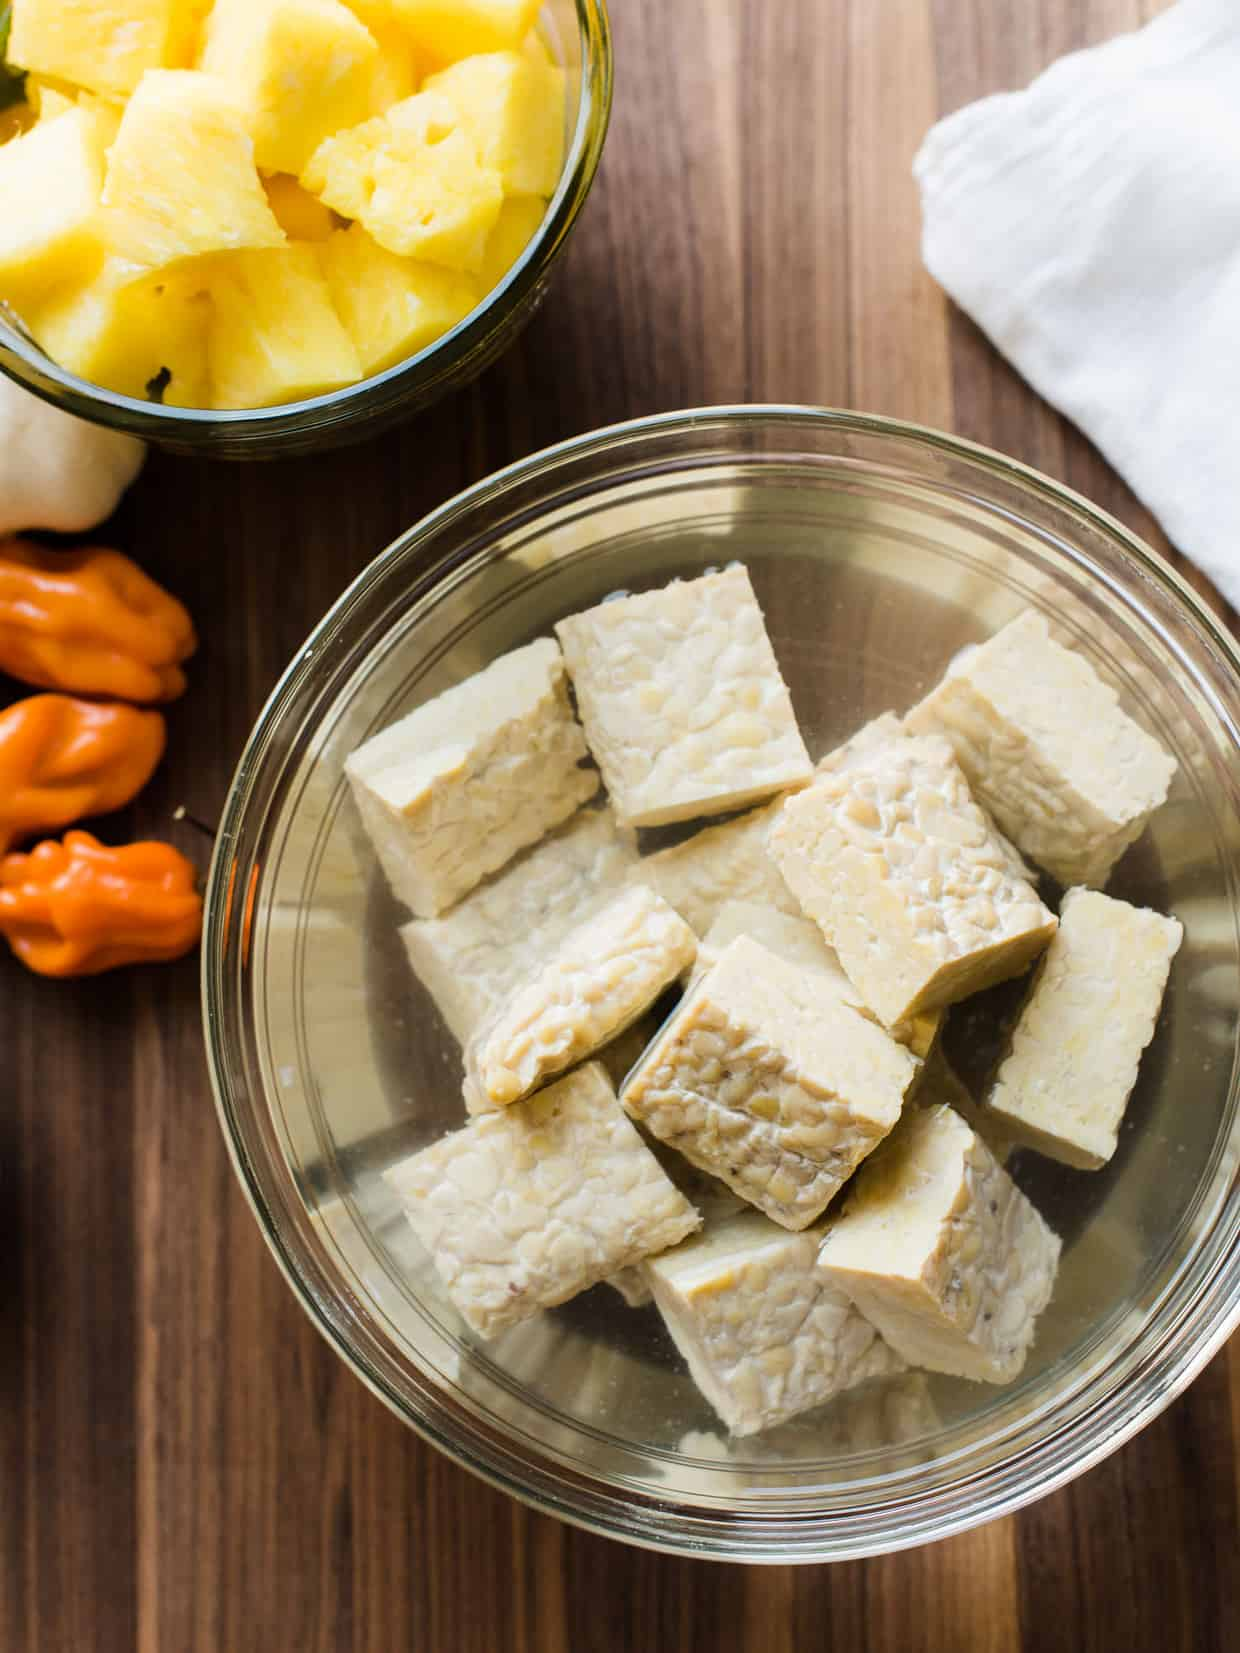 Cubes of tempeh soaking in a glass bowl to make Grilled Tempeh and Vegetable Skewers.